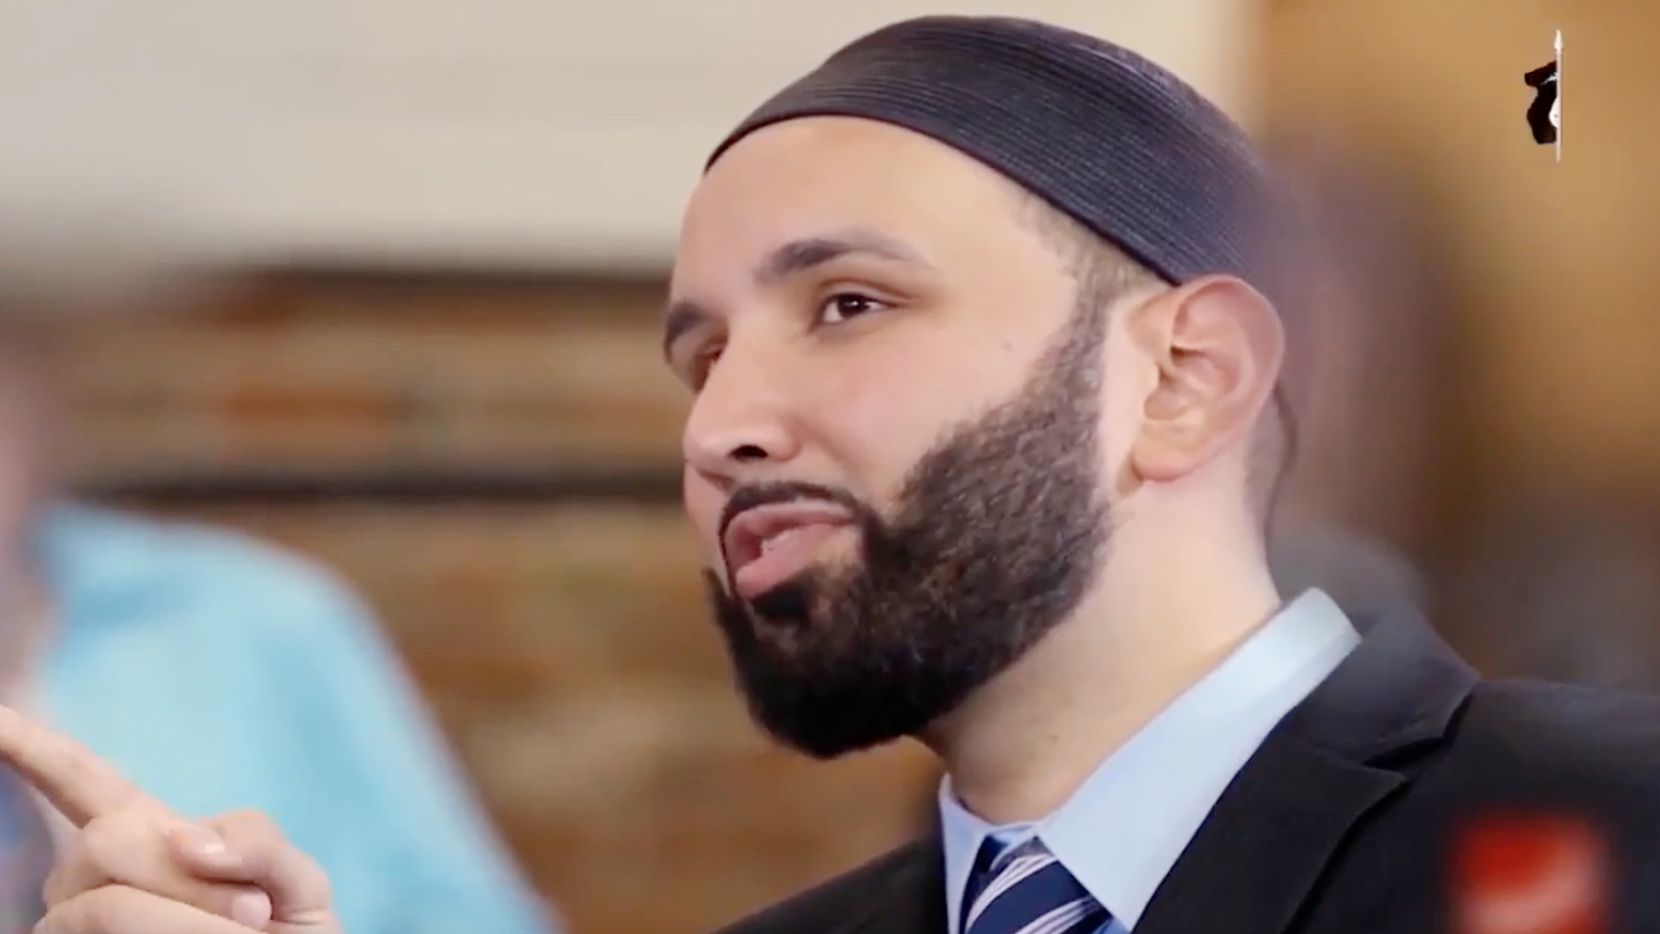 Imam Omar Suleiman was shown in an ISIS video that appeared online making threats against him and other Western imams.